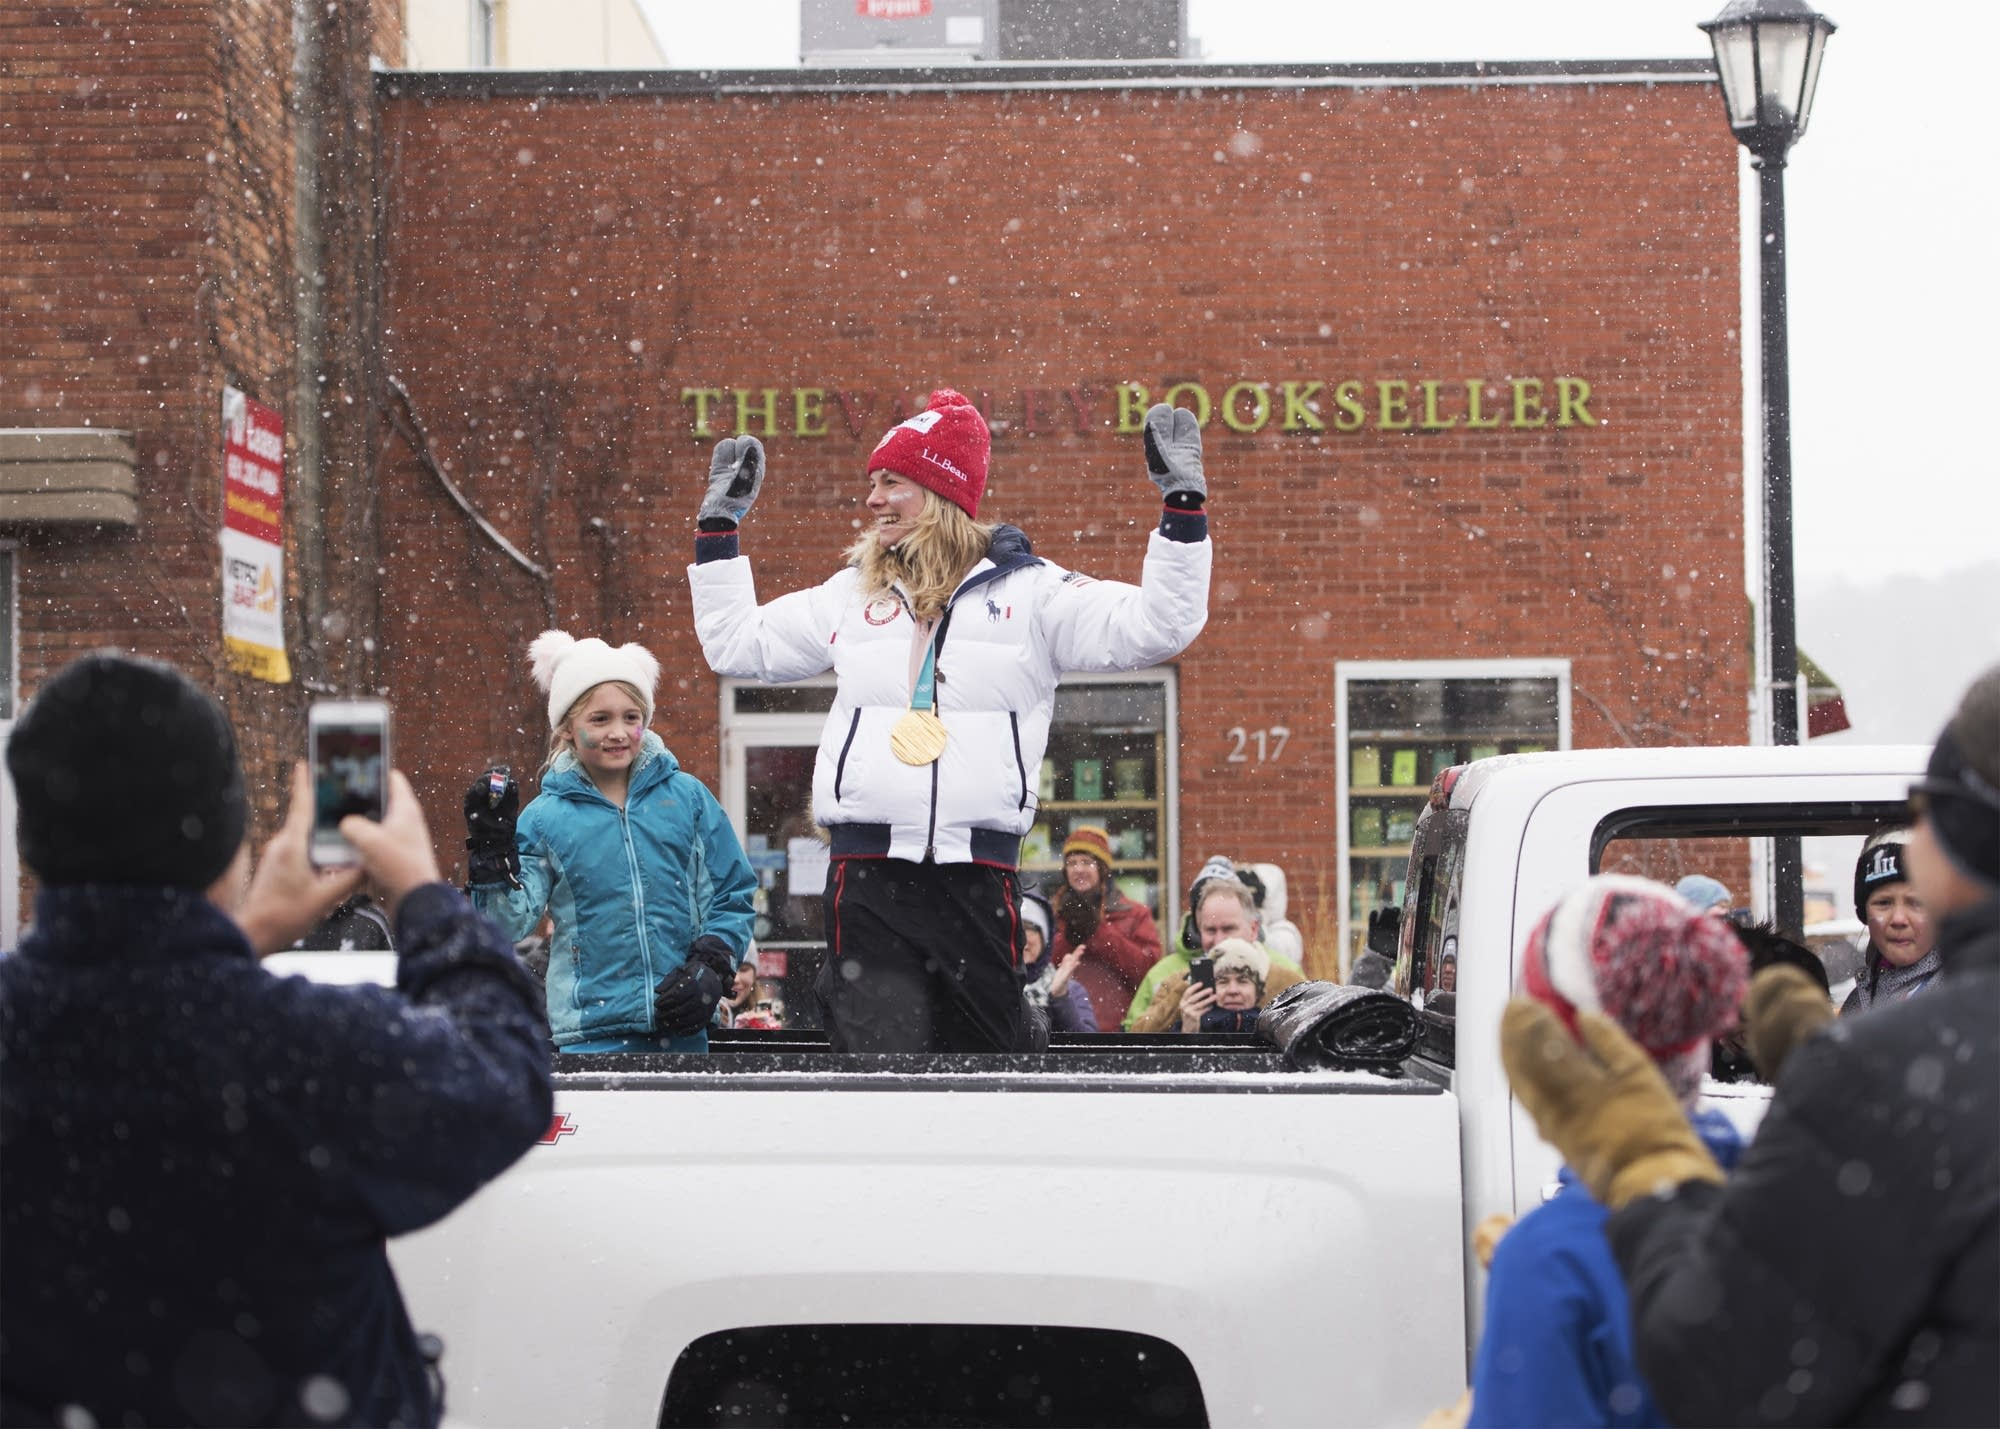 April snow flies as Olympic medalist Jessie Diggins gets a hero's welcome.